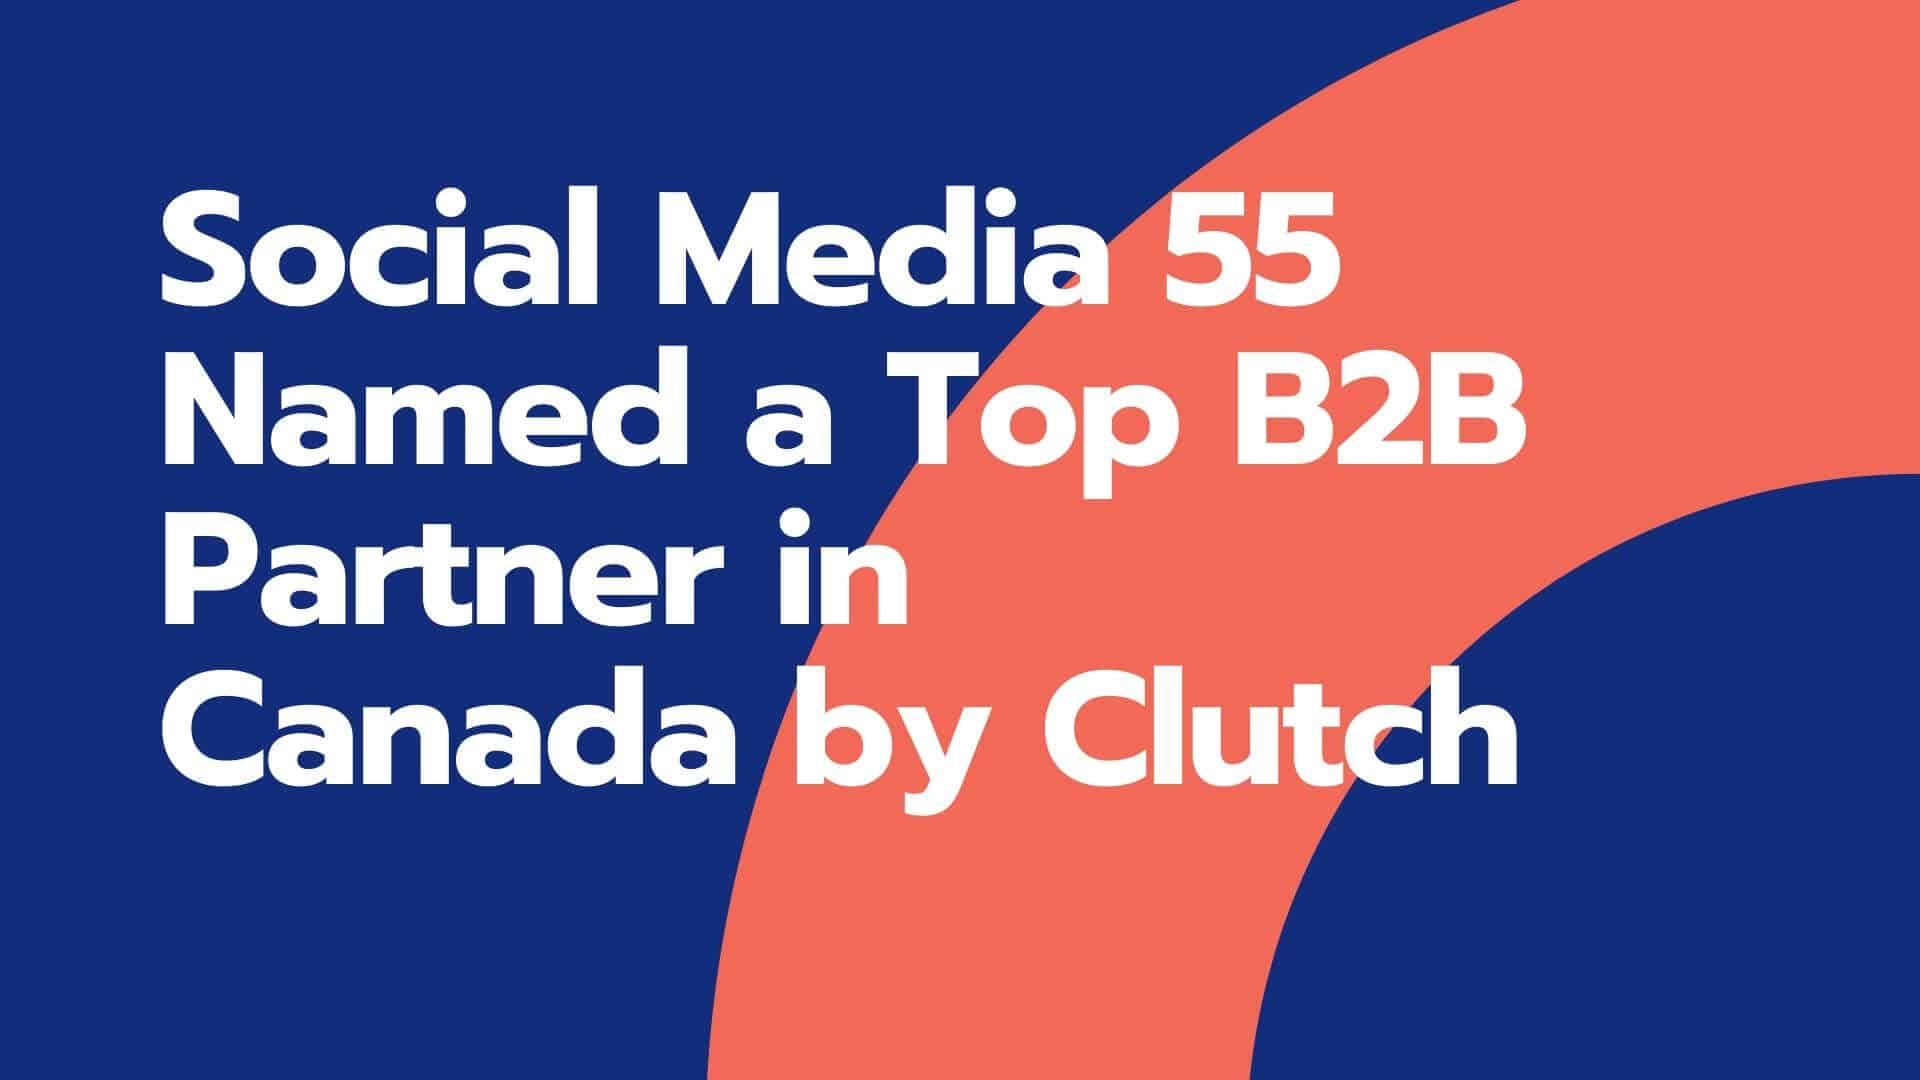 Social Media 55 Named a Top B2B Partner in Canada by Clutch